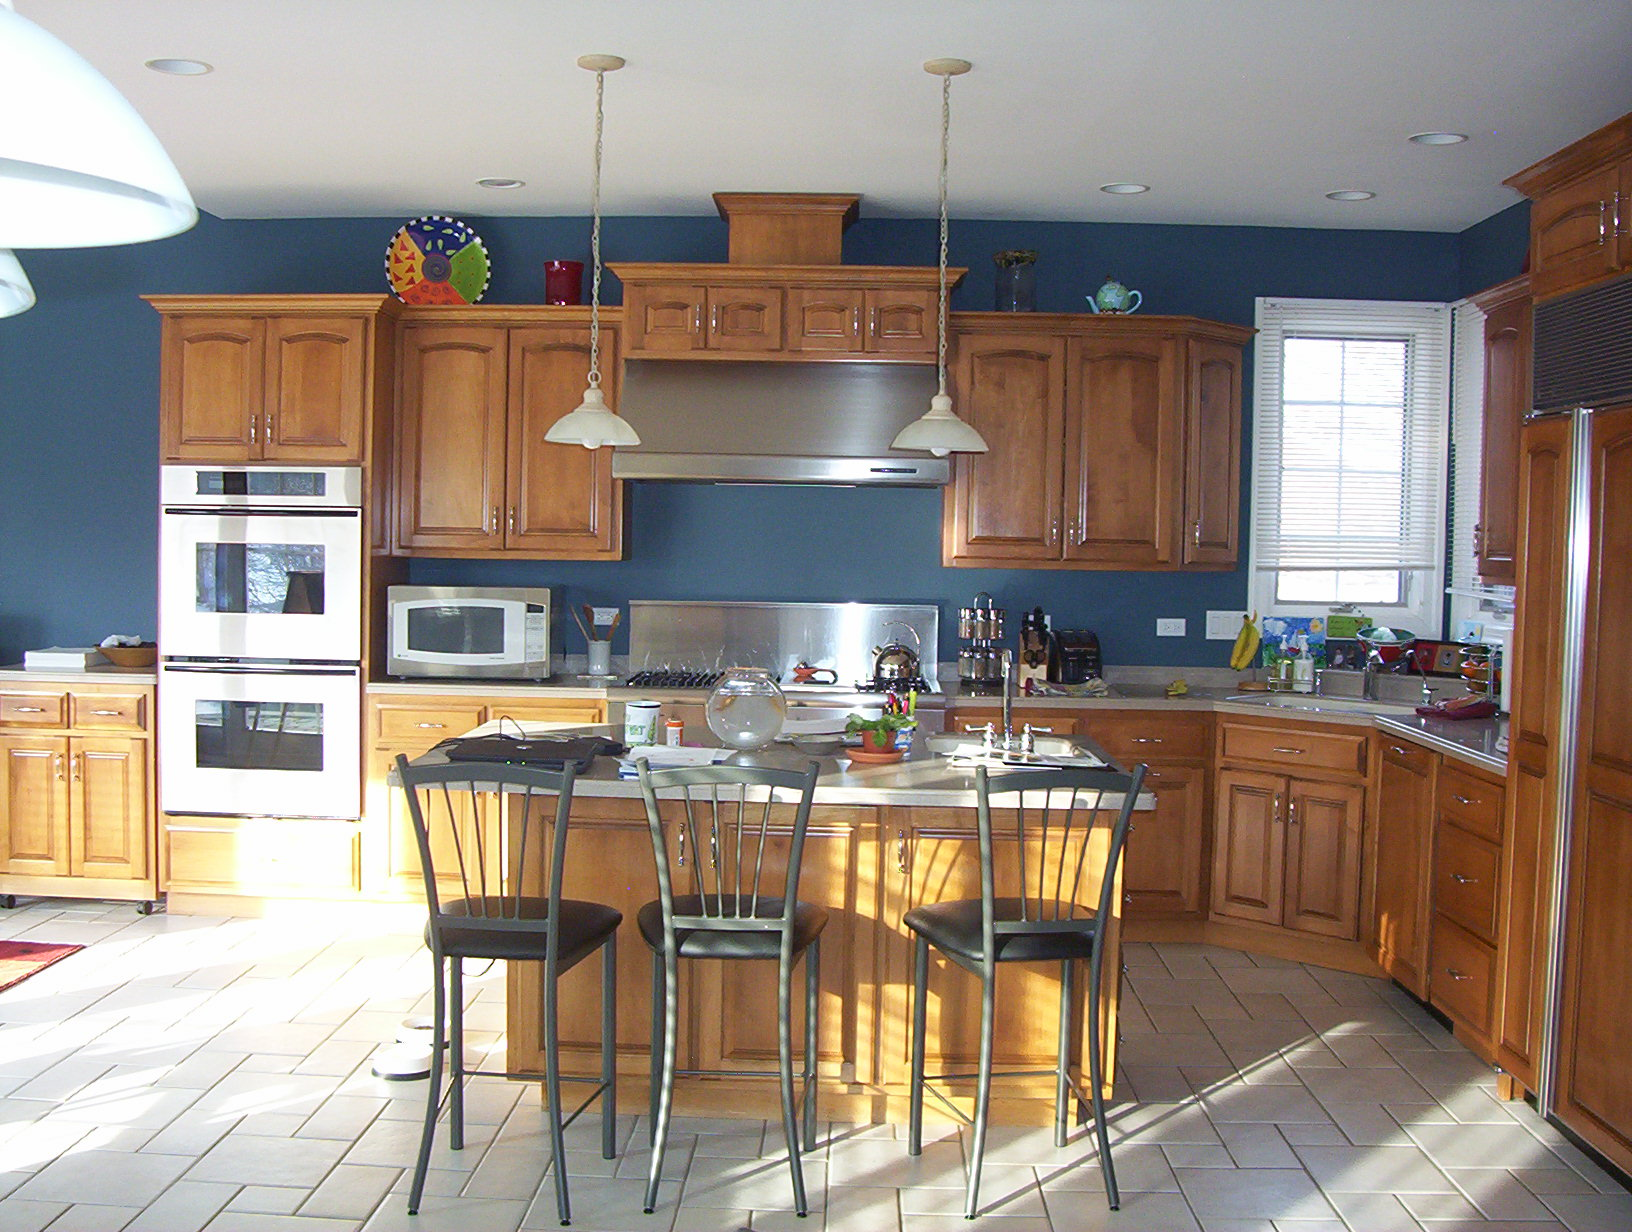 Kitchen paint color help needed - Images of kitchen paint colors ...